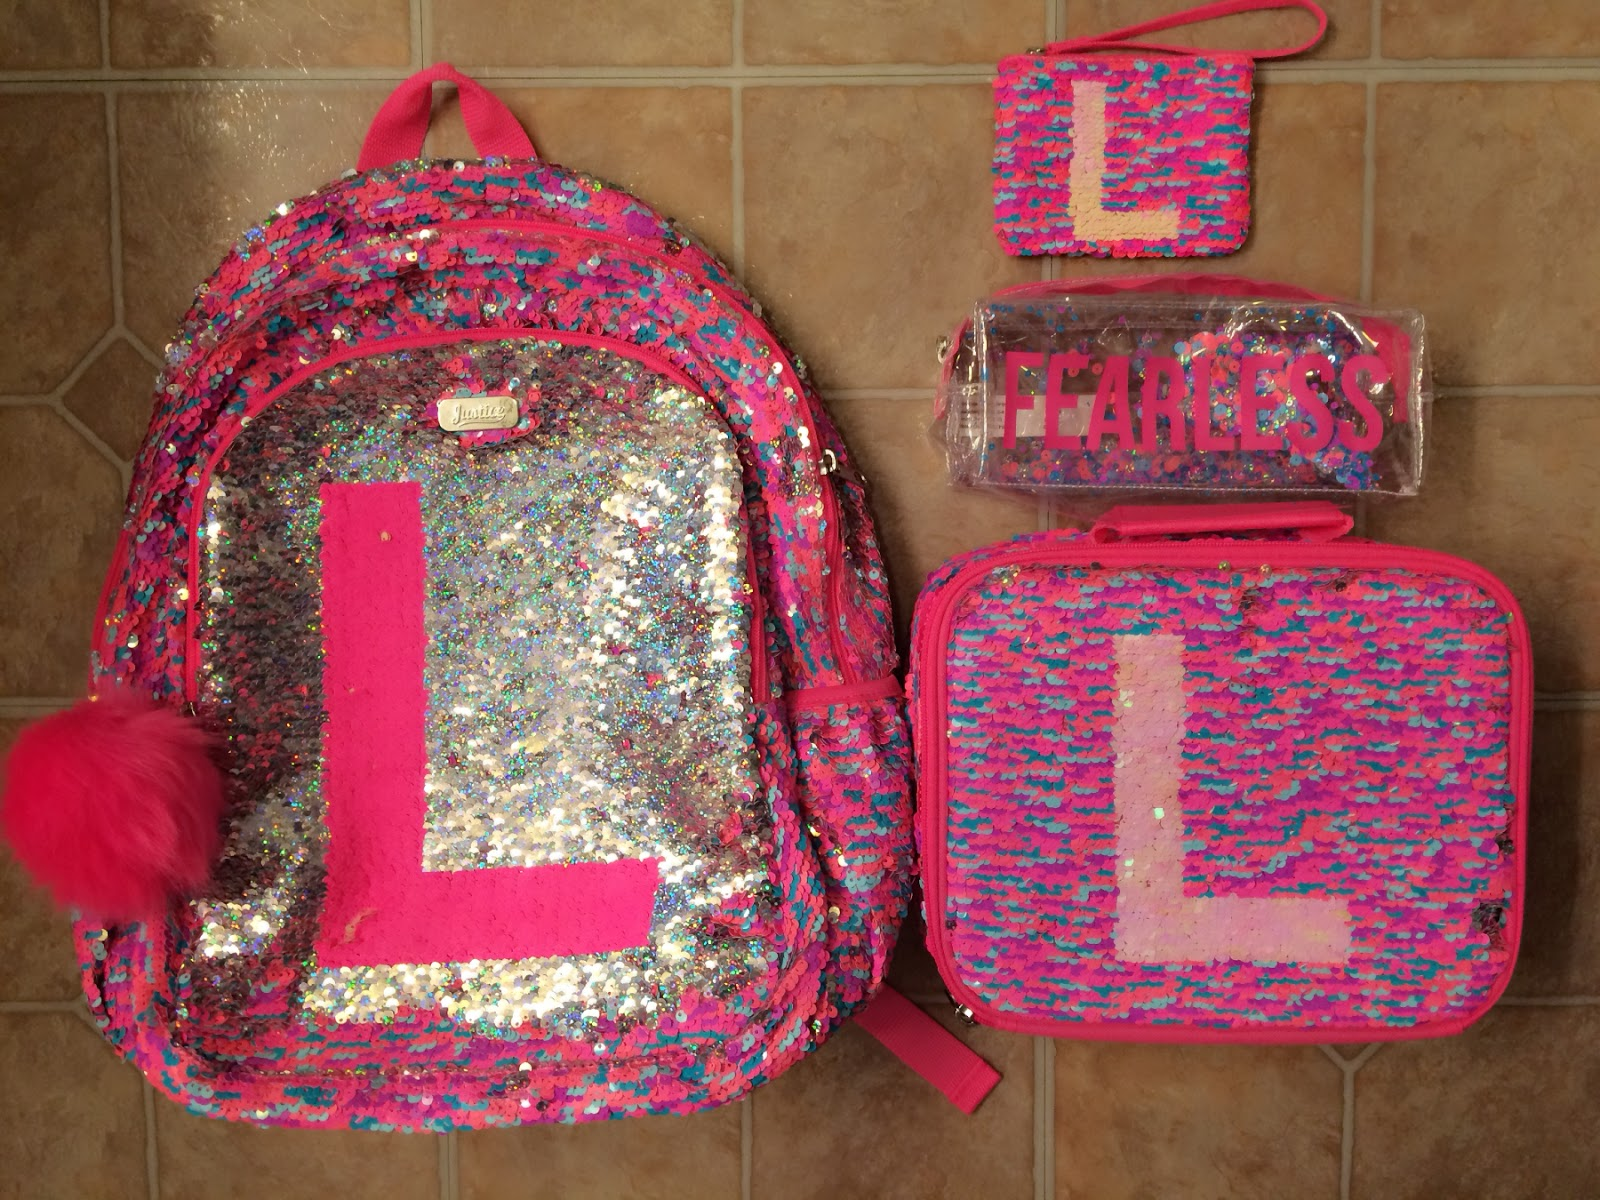 ce6564b60d Must-Have Girls Backpack Trends for 2018 - The Soccer Mom Blog